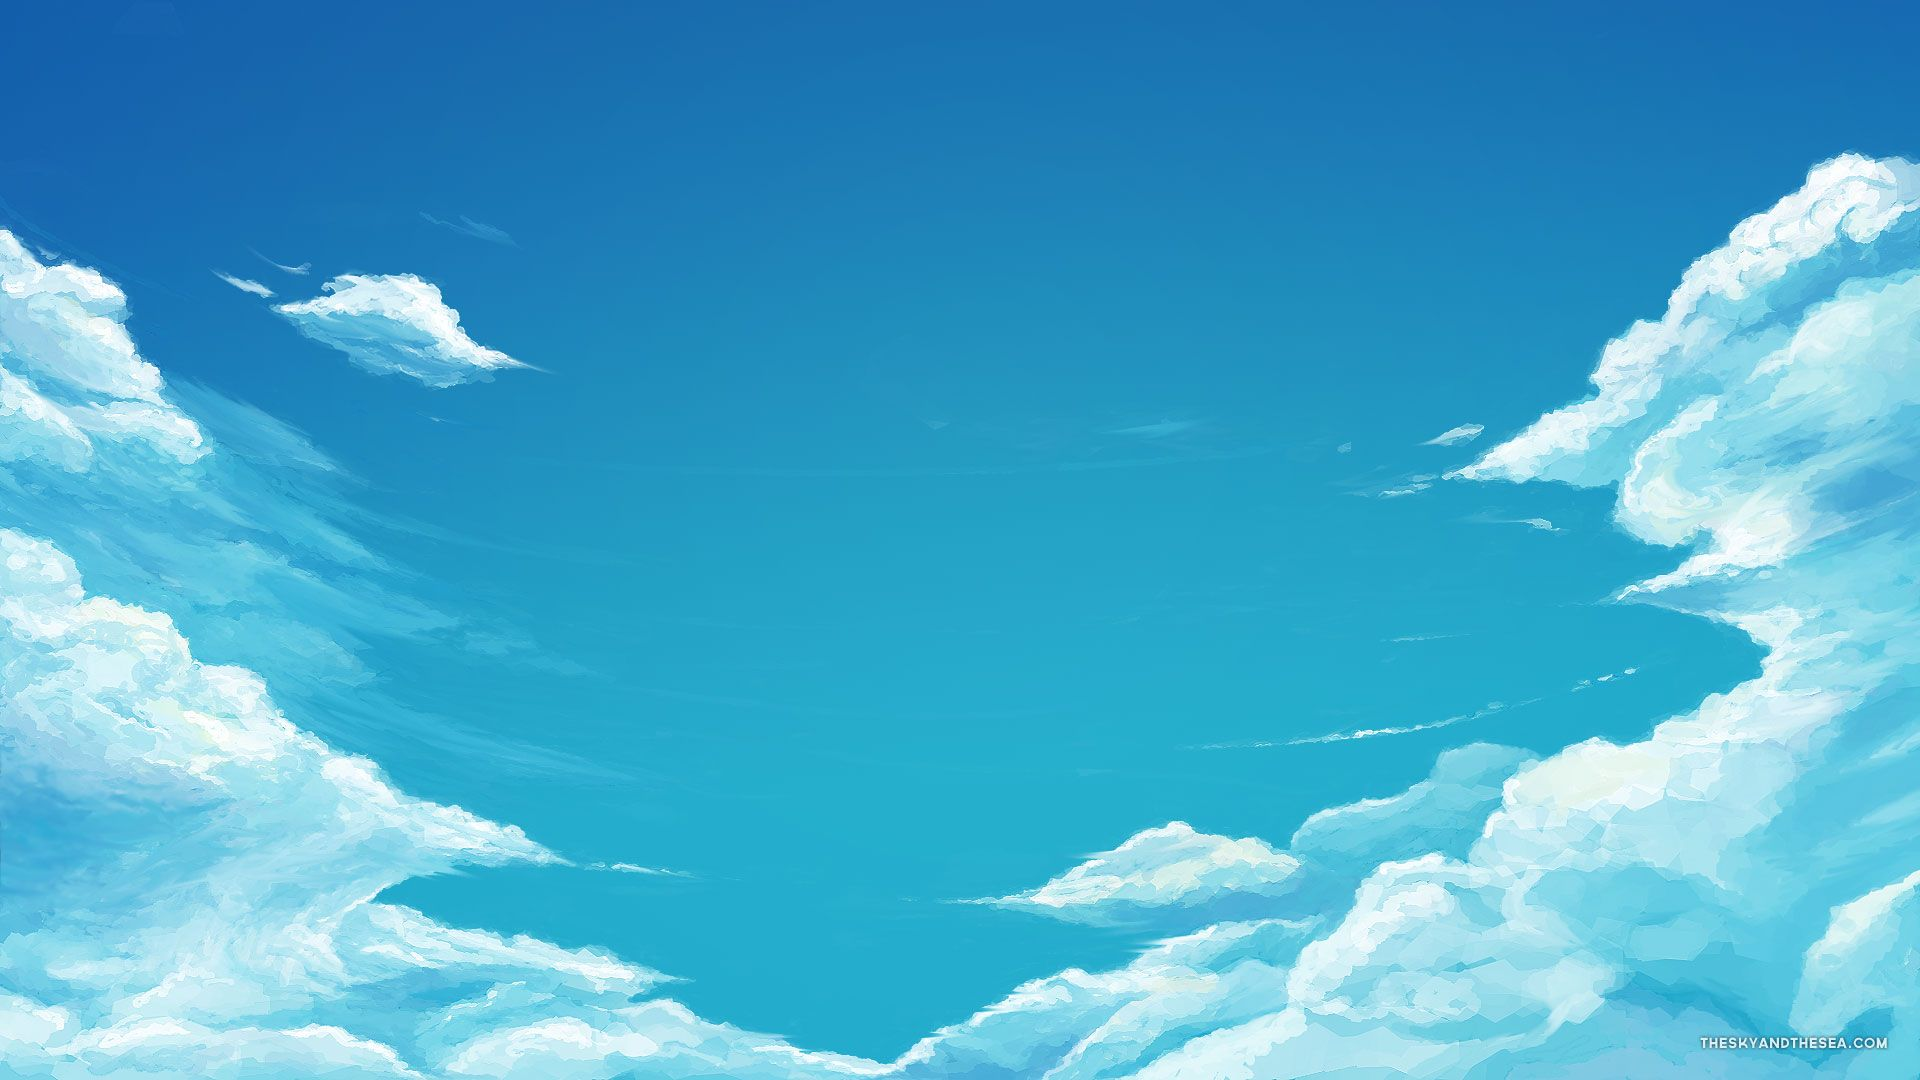 Free Wallpapers Blue Sky And Clouds 1920x1080 Wallpaper Blue